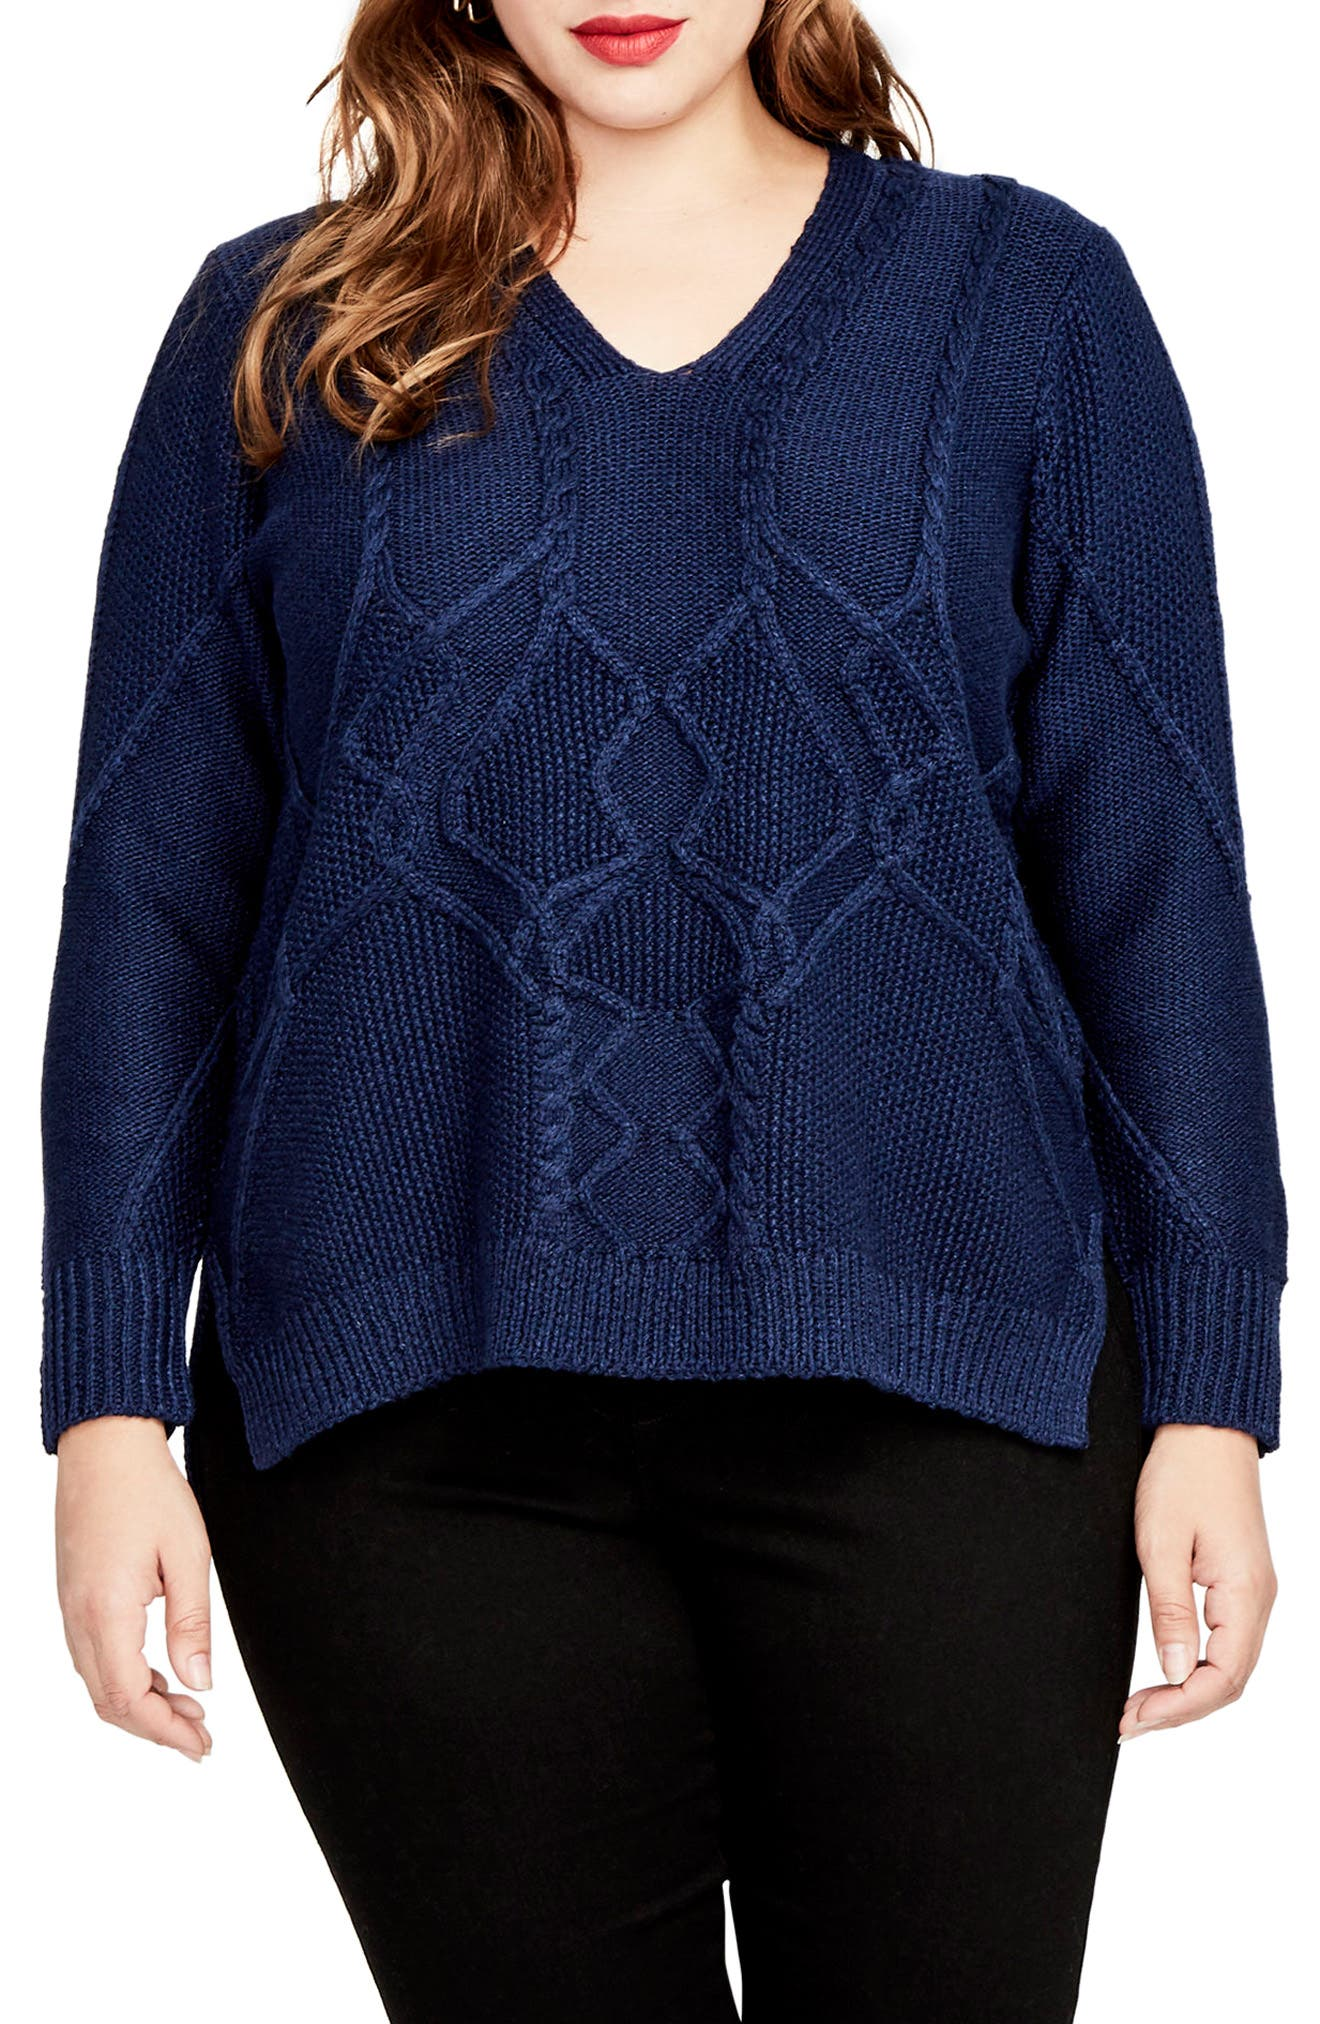 Mixed Cable Sweater,                             Main thumbnail 1, color,                             Blue Navy